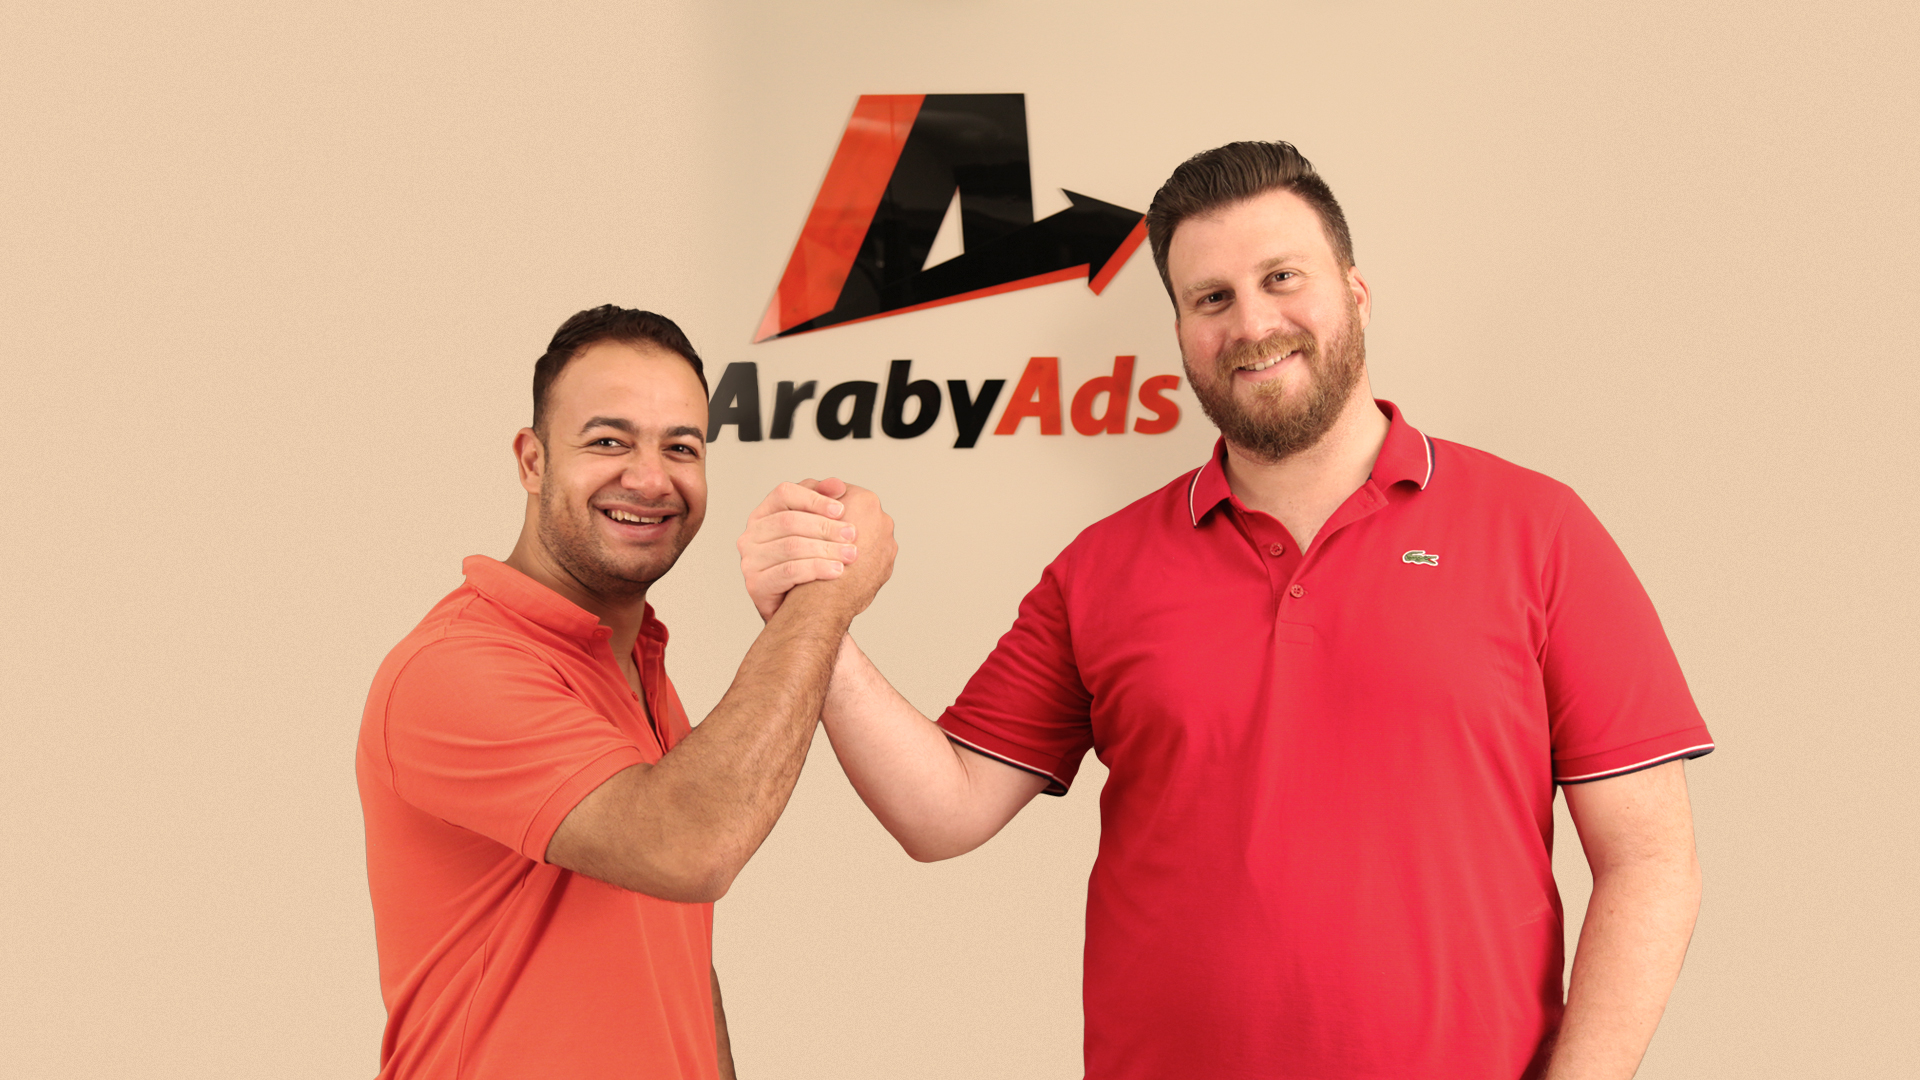 arabyads founders